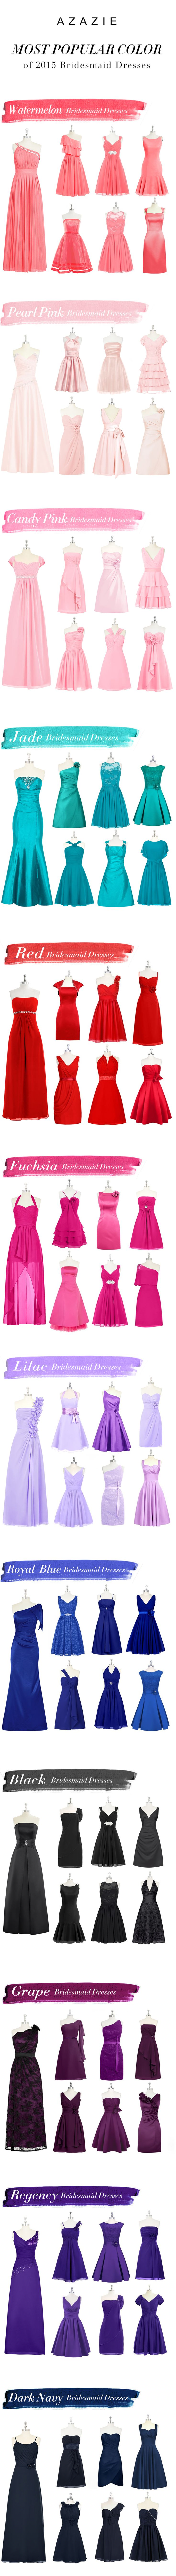 Azazie is the online destination for special occasion dresses. Find the perfect bridesmaid dresses, with over 300 styles in 50 colors on AZAZIE.  See more on the website: http://www.azazie.com/all/bridesmaid-dresses